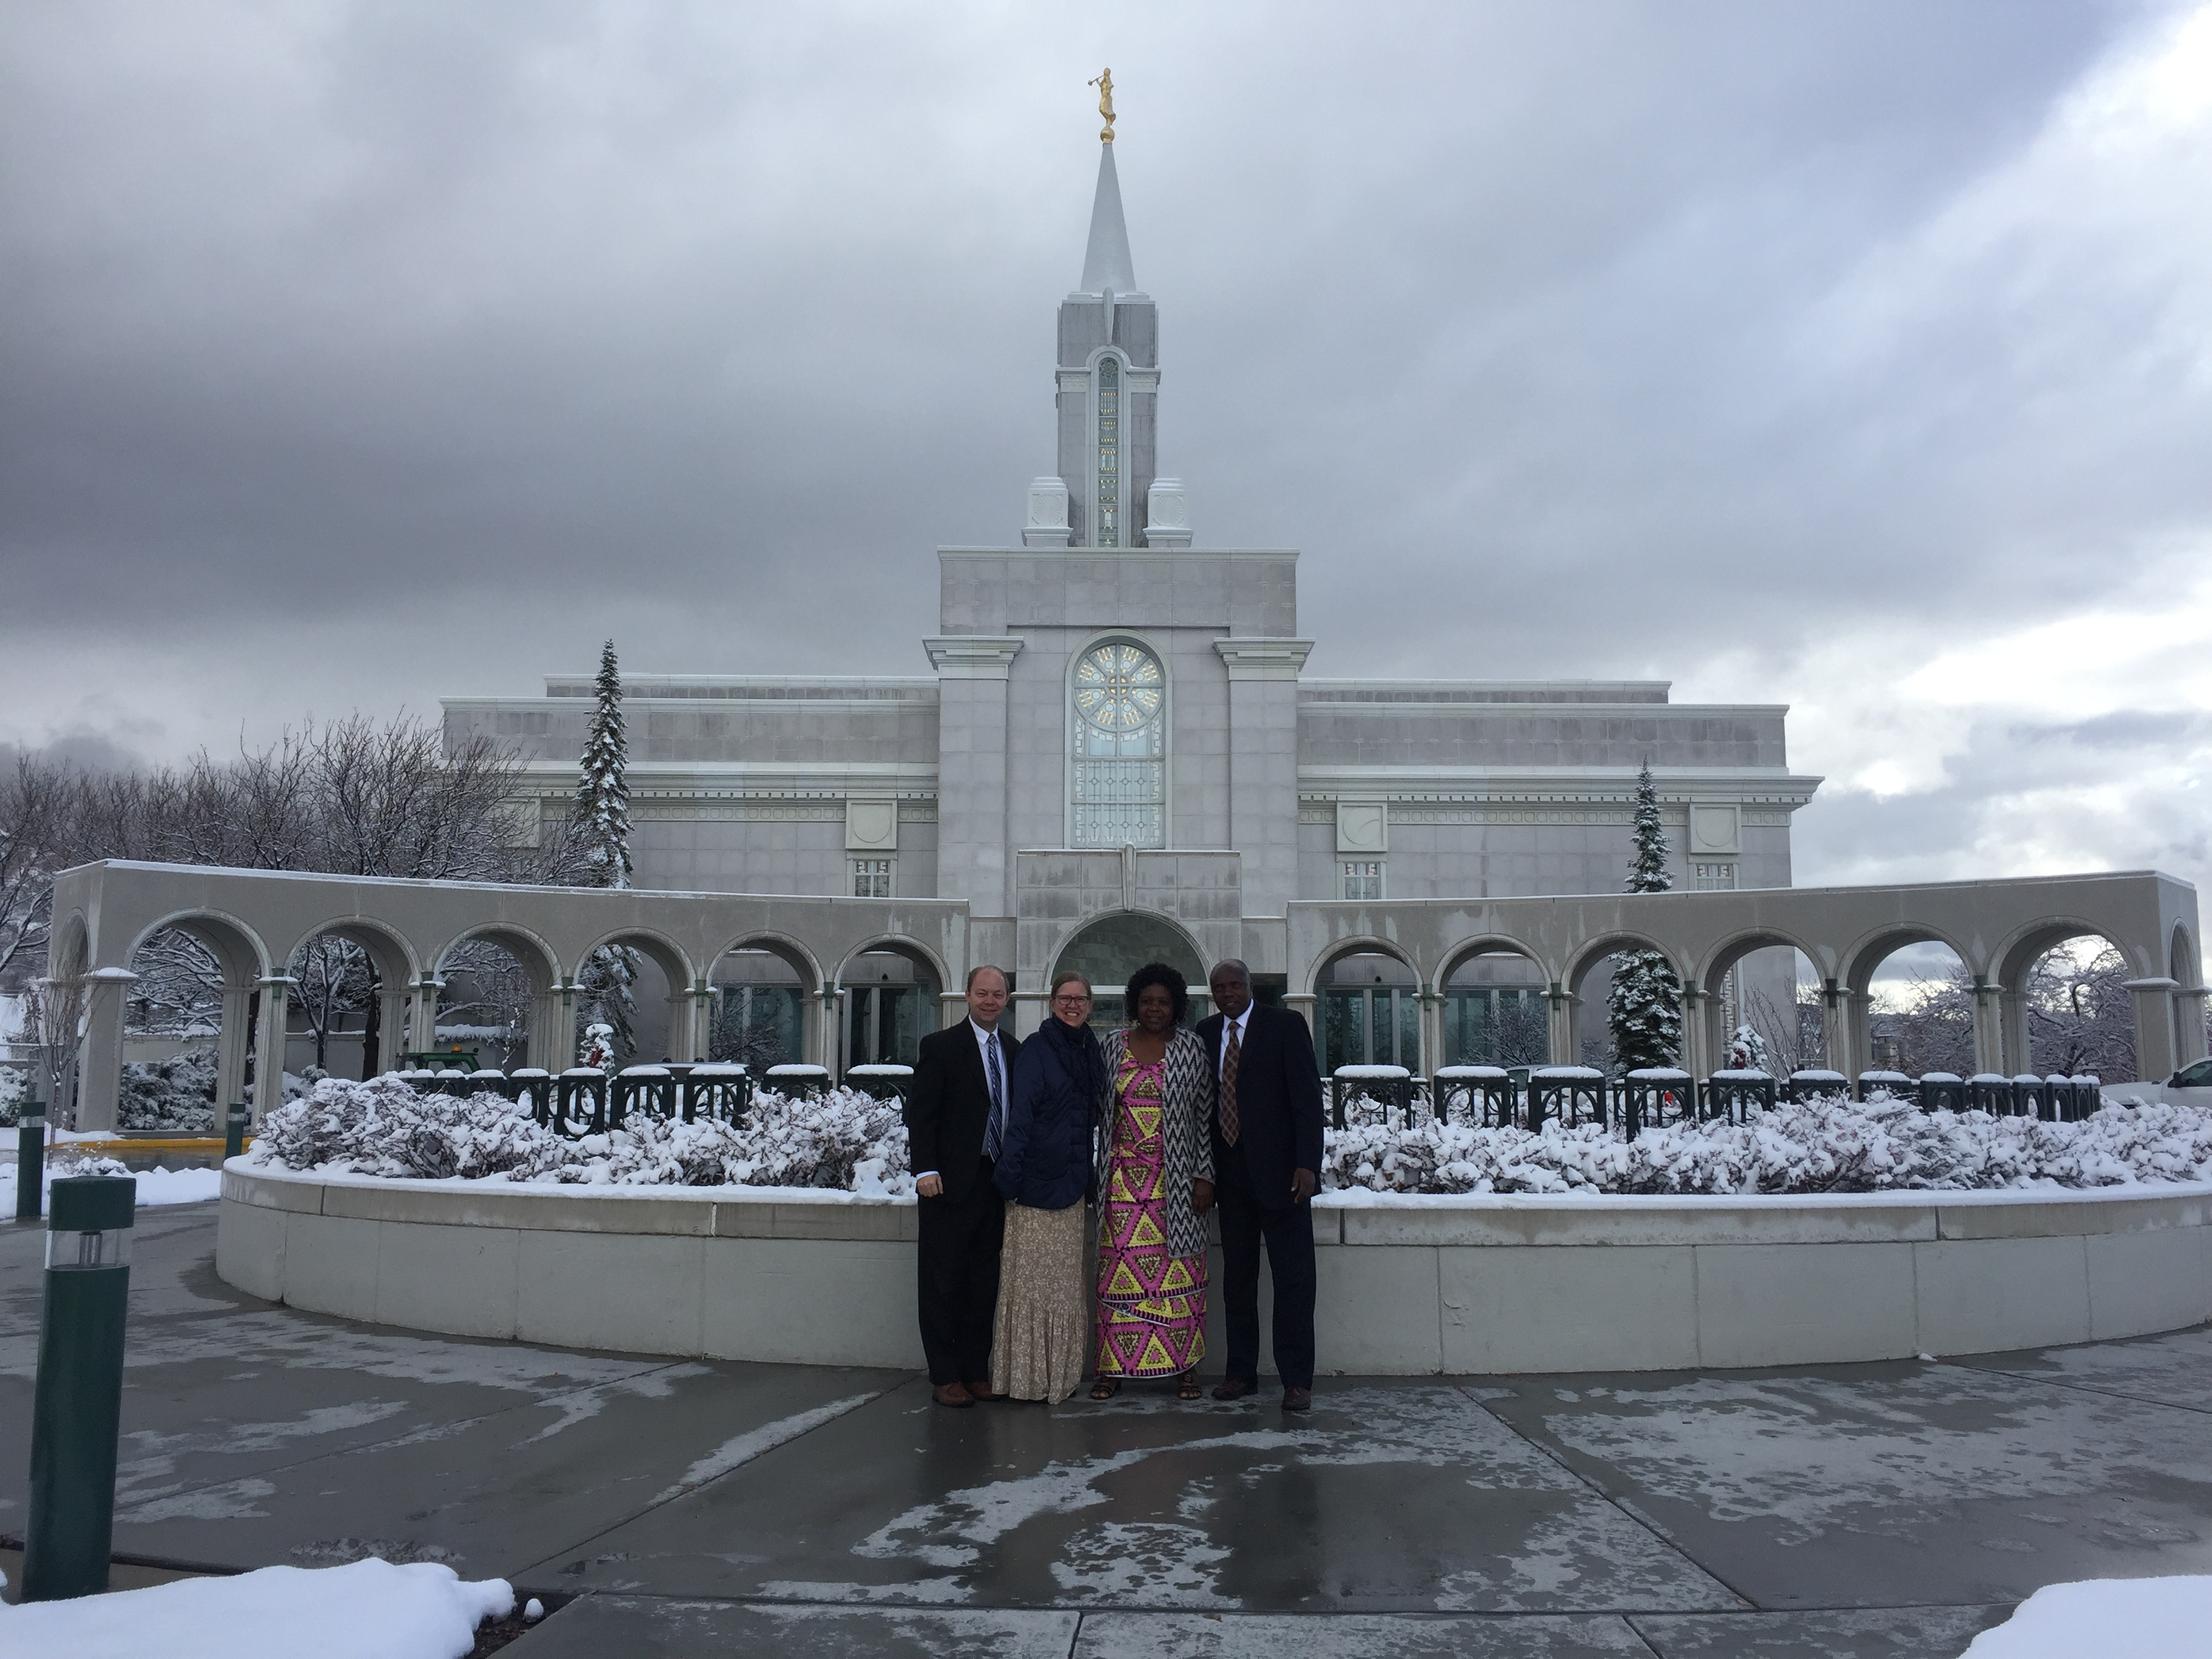 From left, Charles Graham, Dawn Graham, stand with Donatira Kabaji and Mitonzi Bakunz in front of the Bountiful Utah Temple after accompanying them through the temple for their first time.